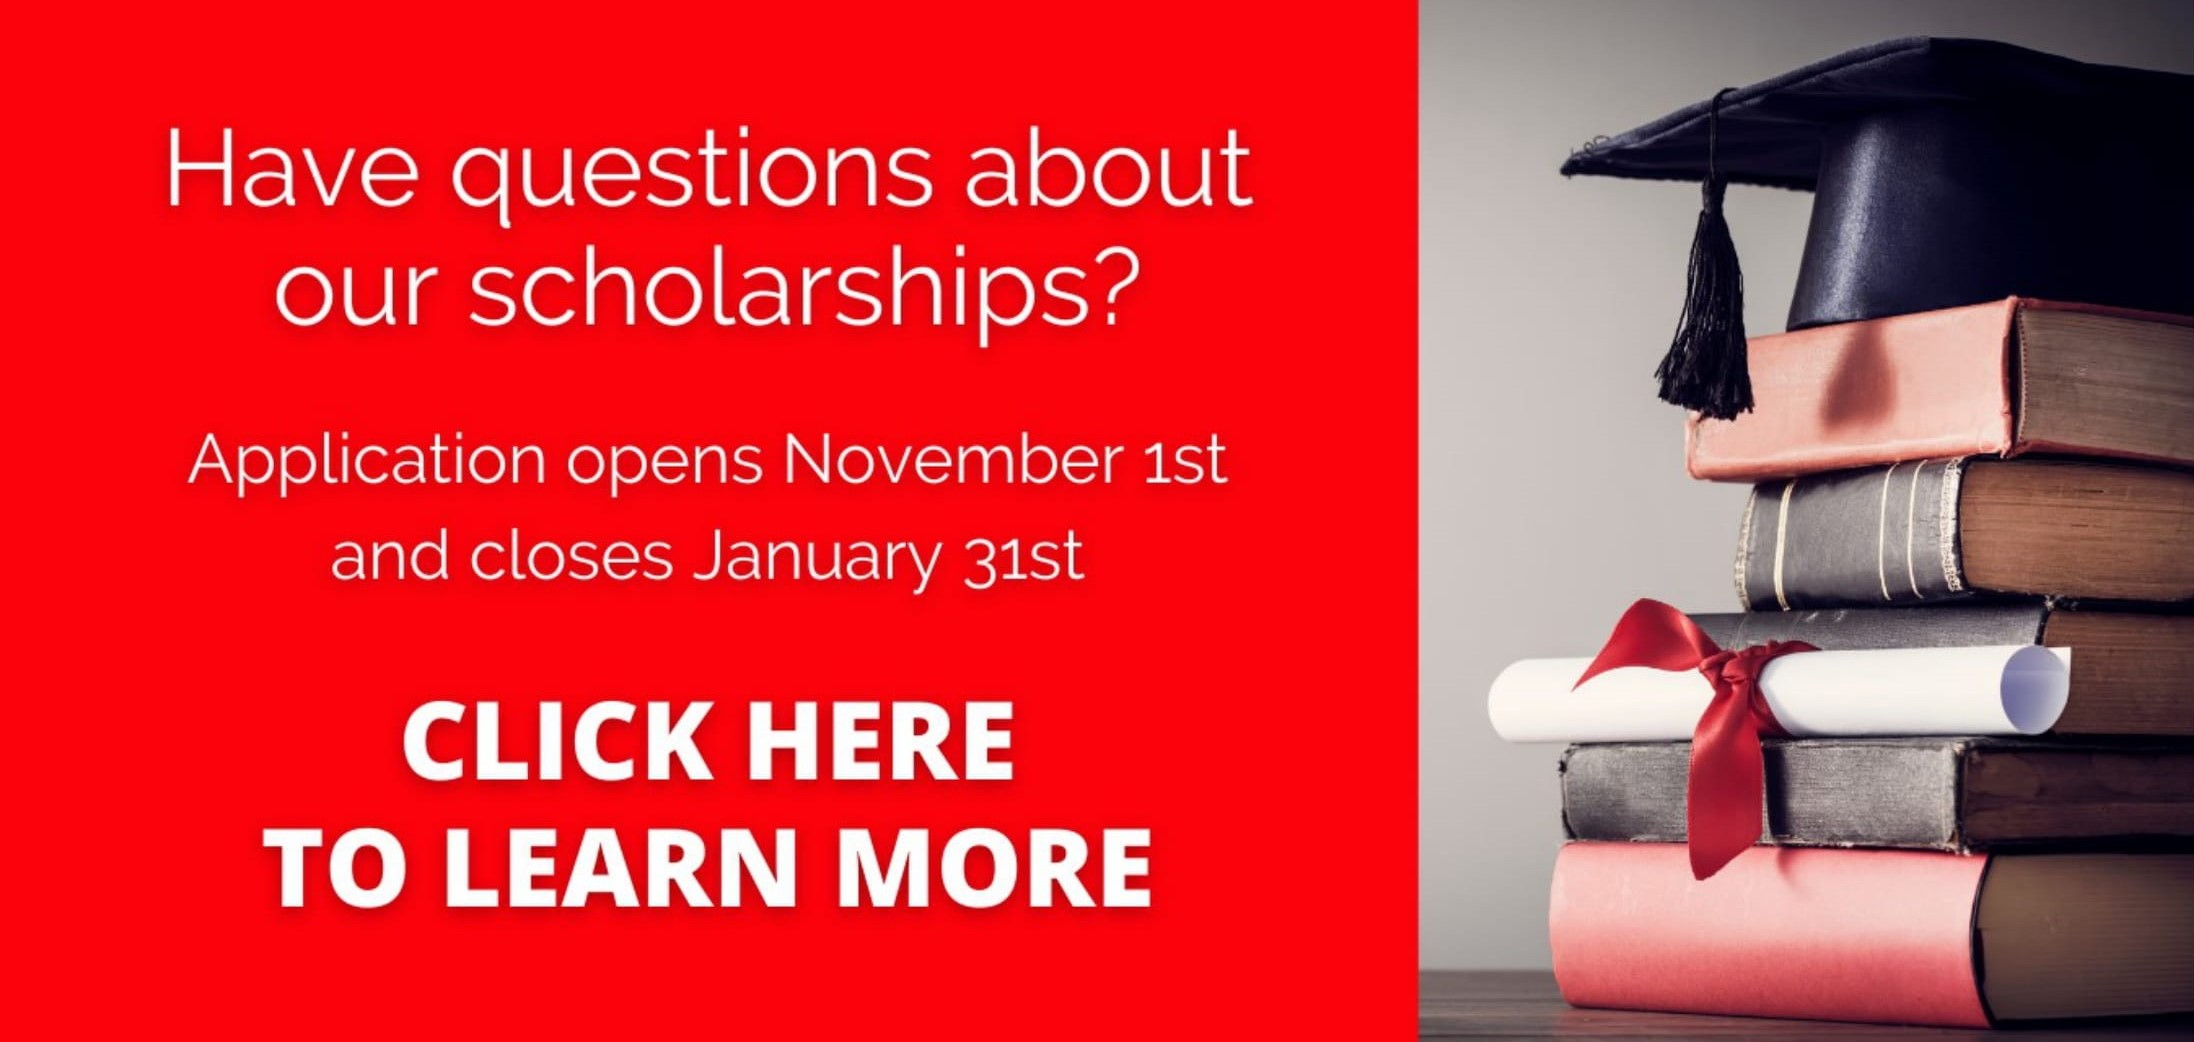 Banner regarding our scholarship application opening November 1st. More information can be found on scholarship page.